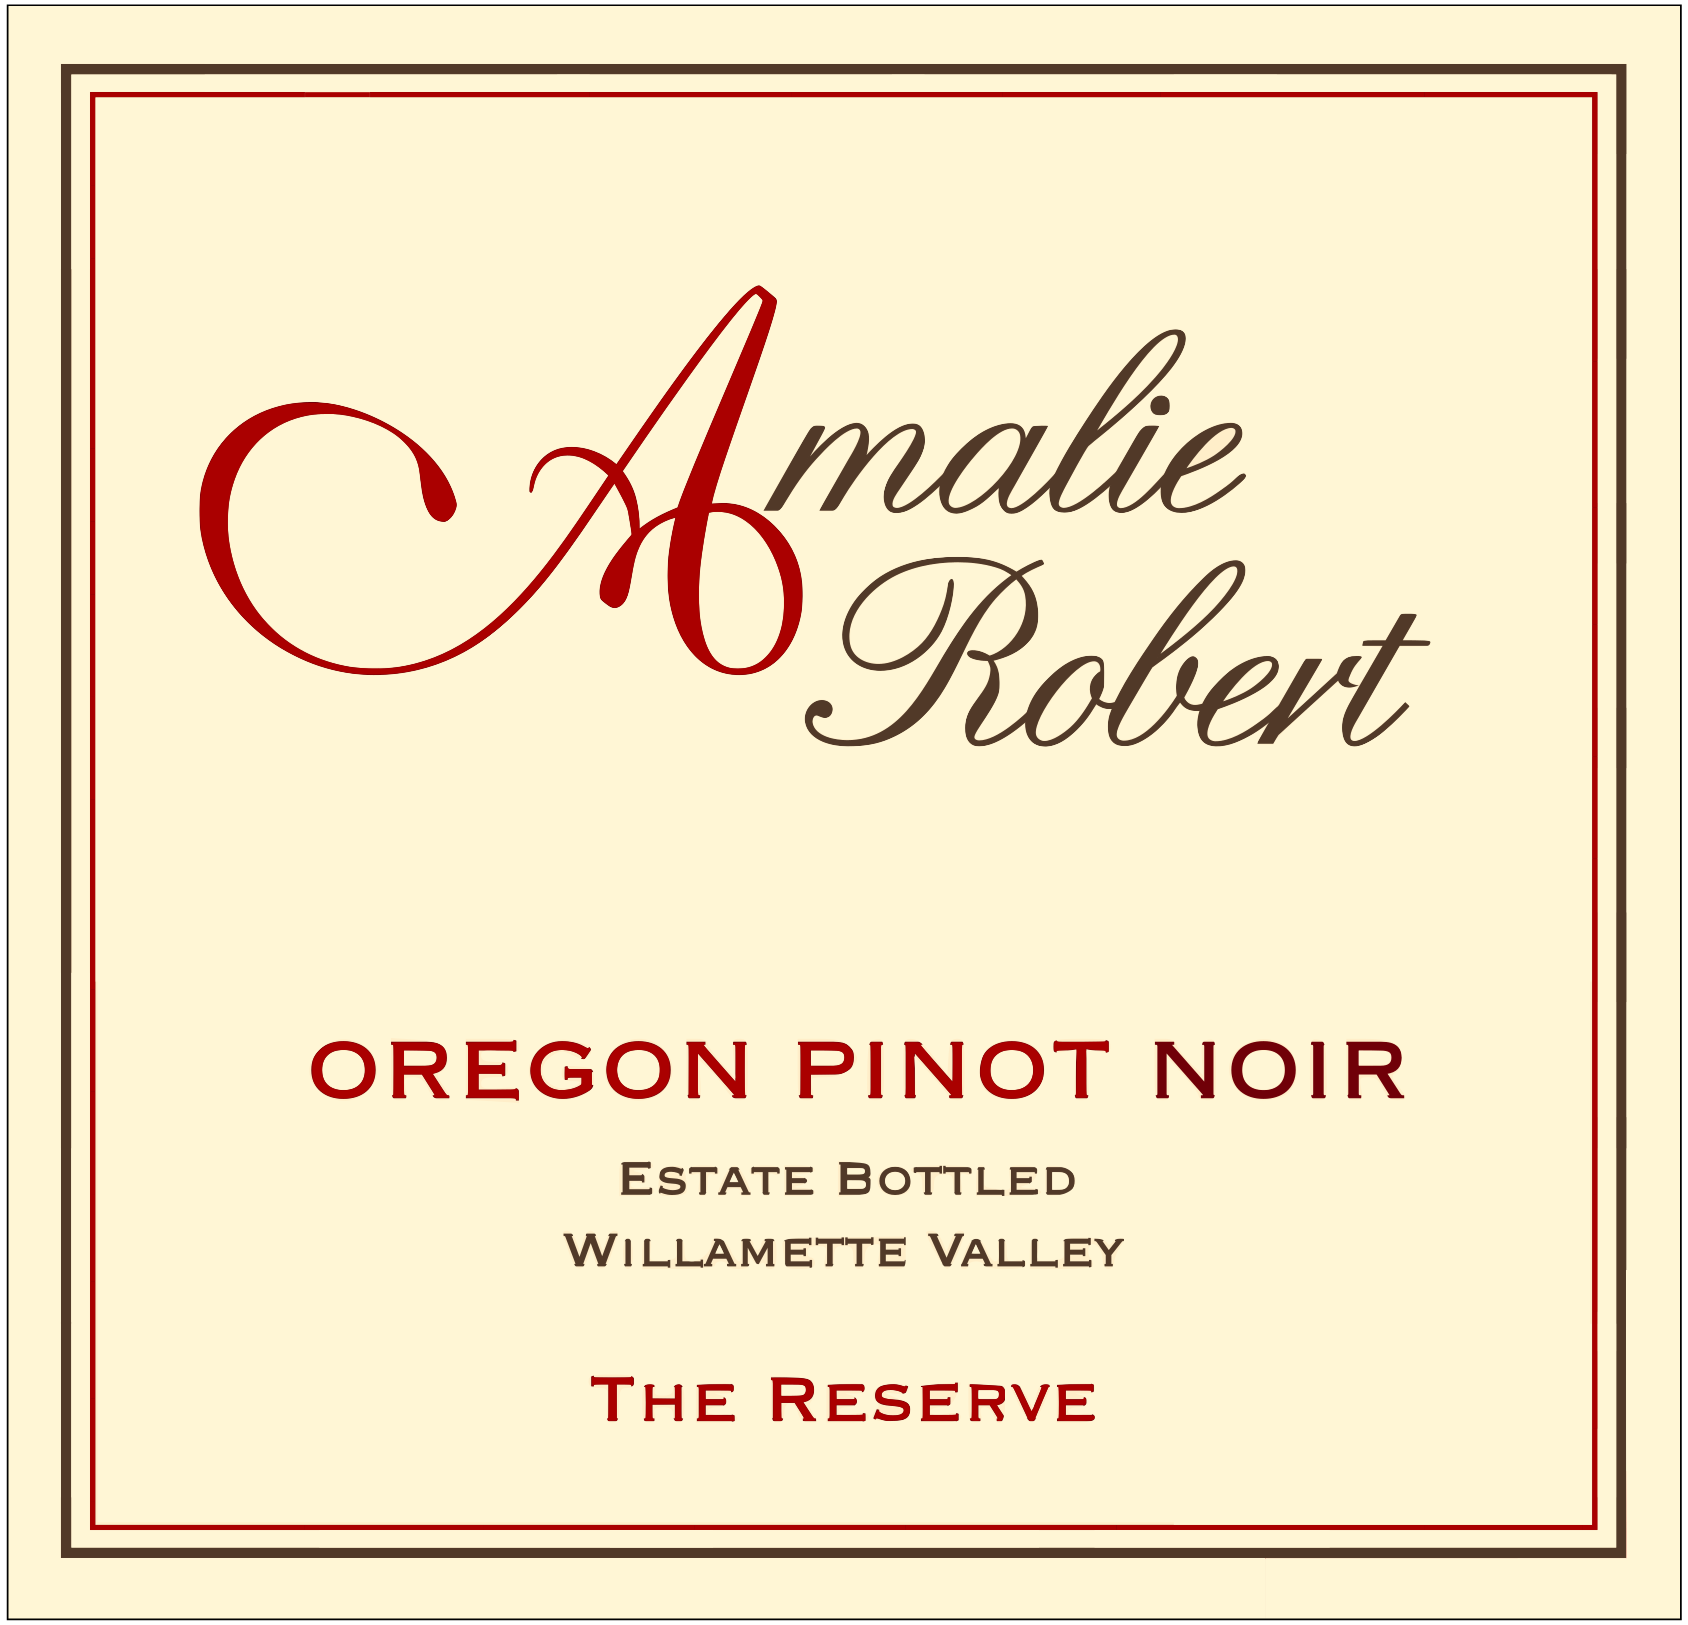 2012 The Reserve Pinot Noir